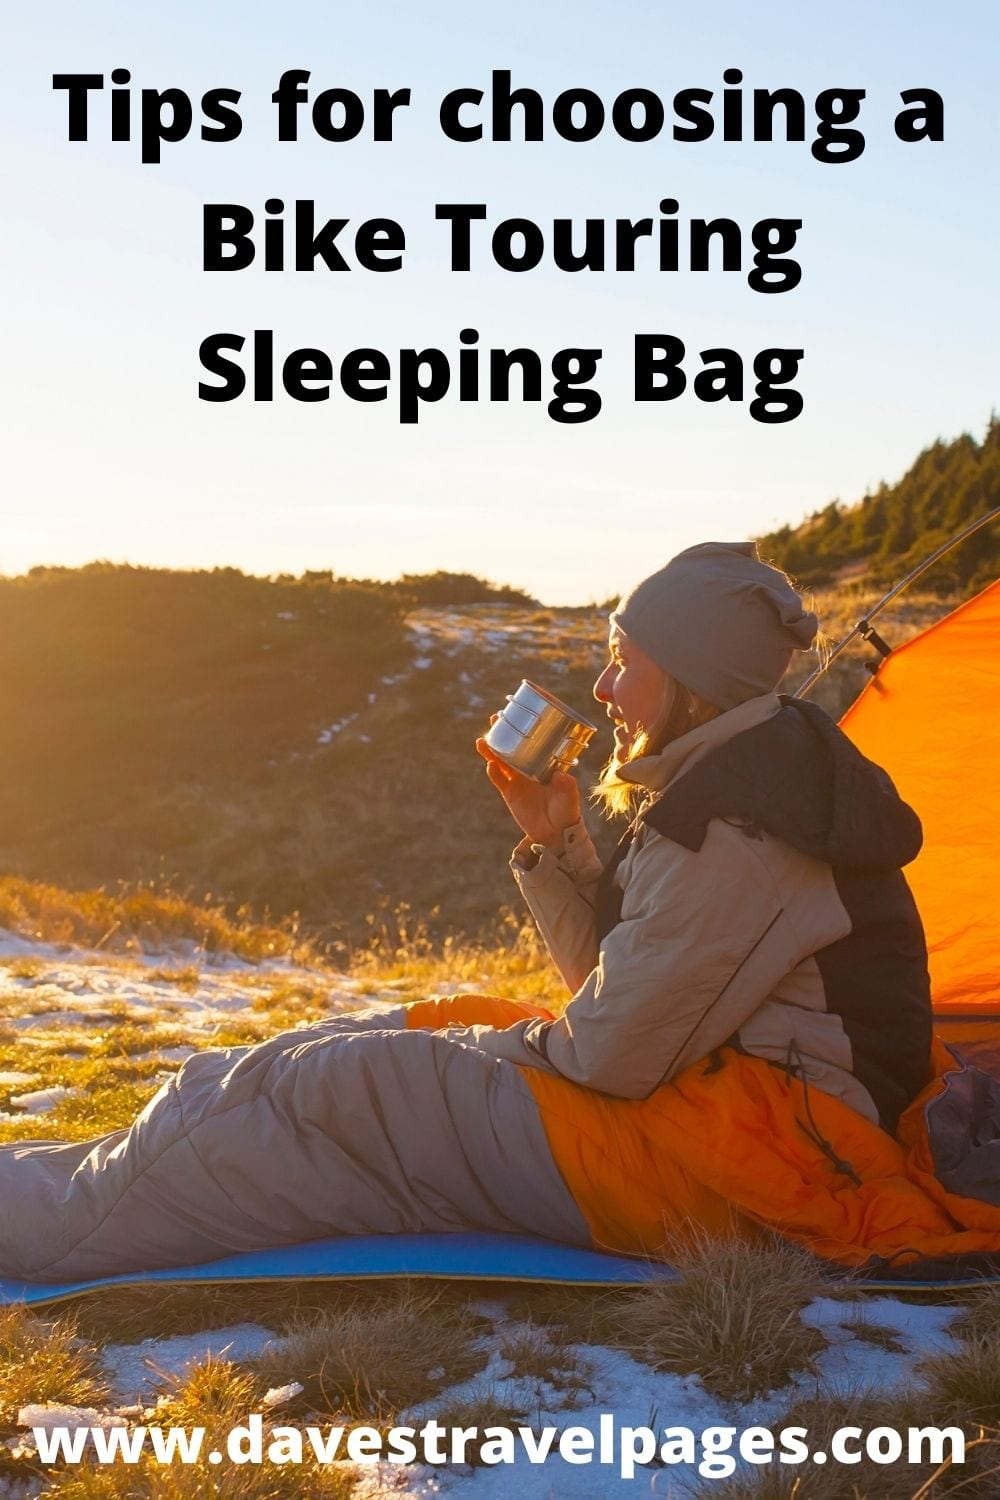 Tips for choosing the best sleeping bags for bike touring and bikepacking